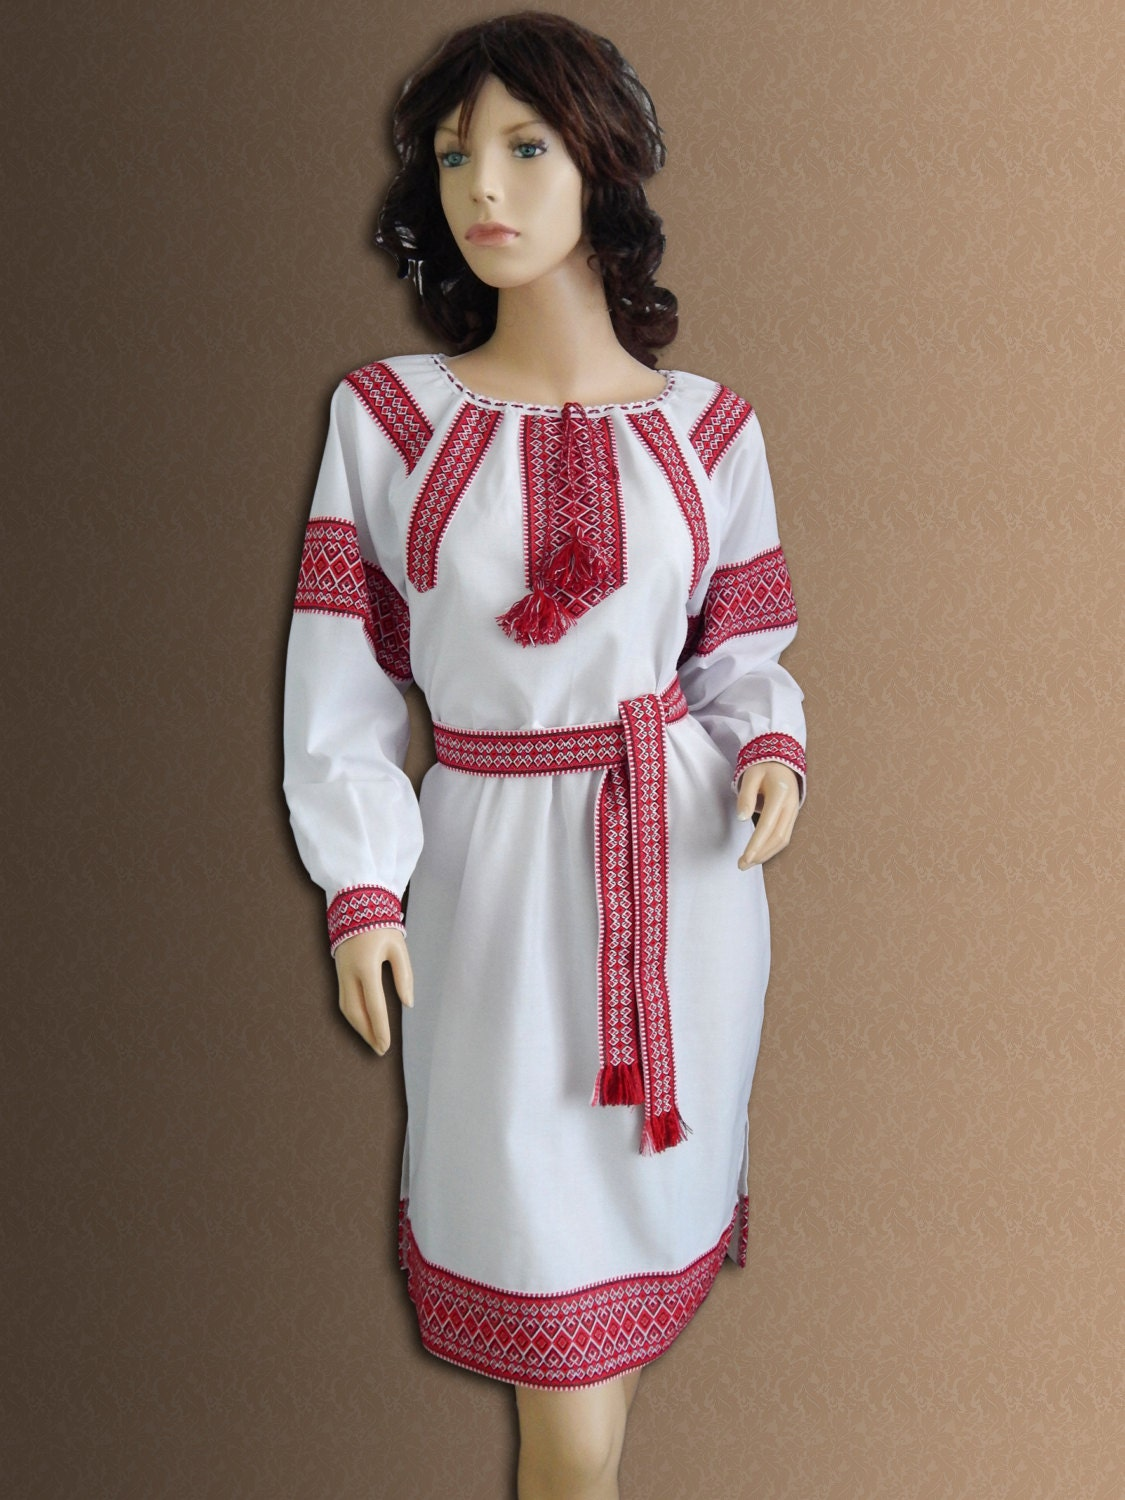 Ukrainian Vyshyvanka Embroidered Dress Ukrainian Dress